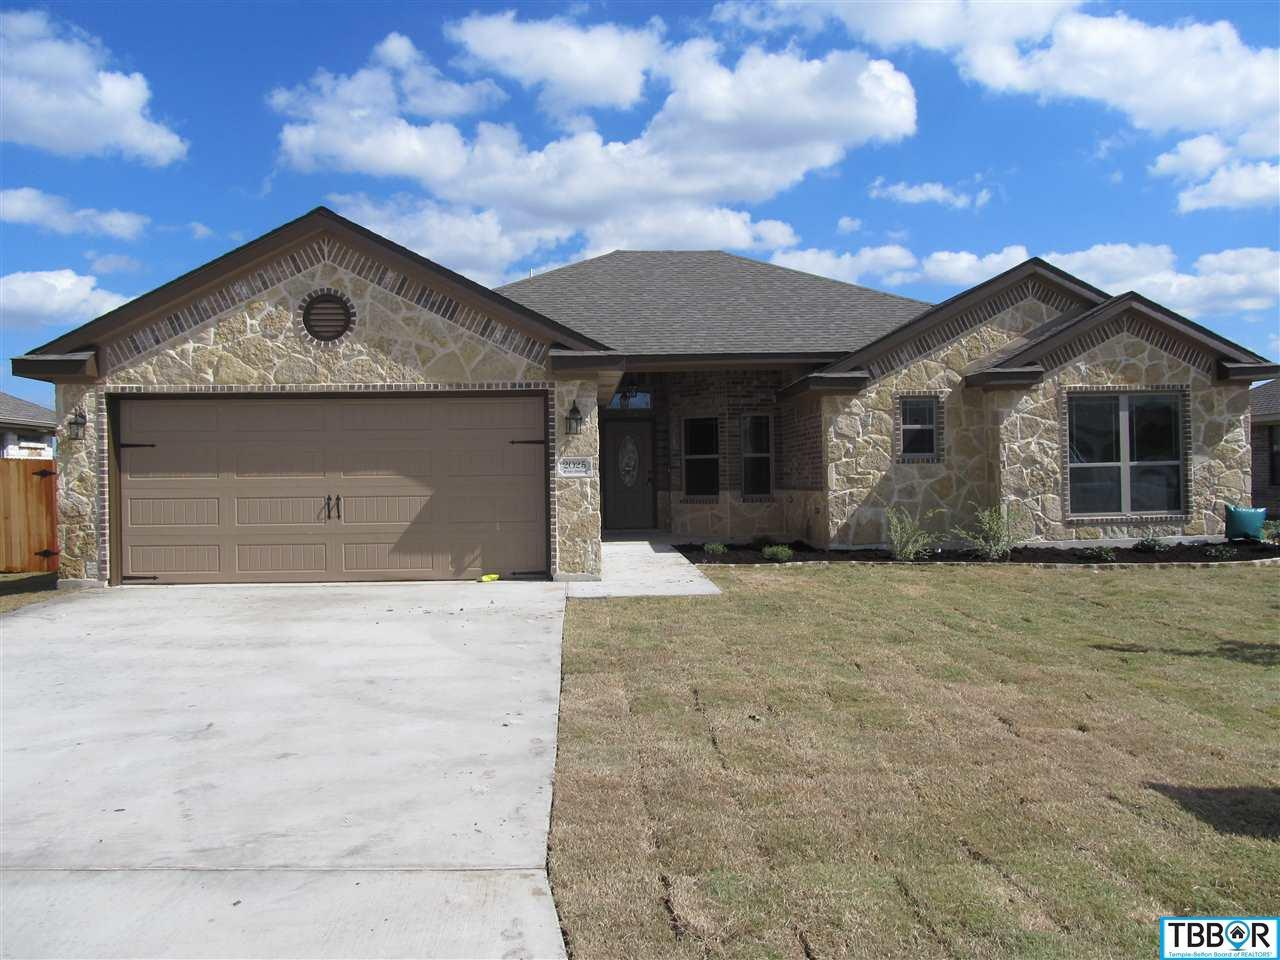 2025 Briar Hollow Drive, Temple TX 76502